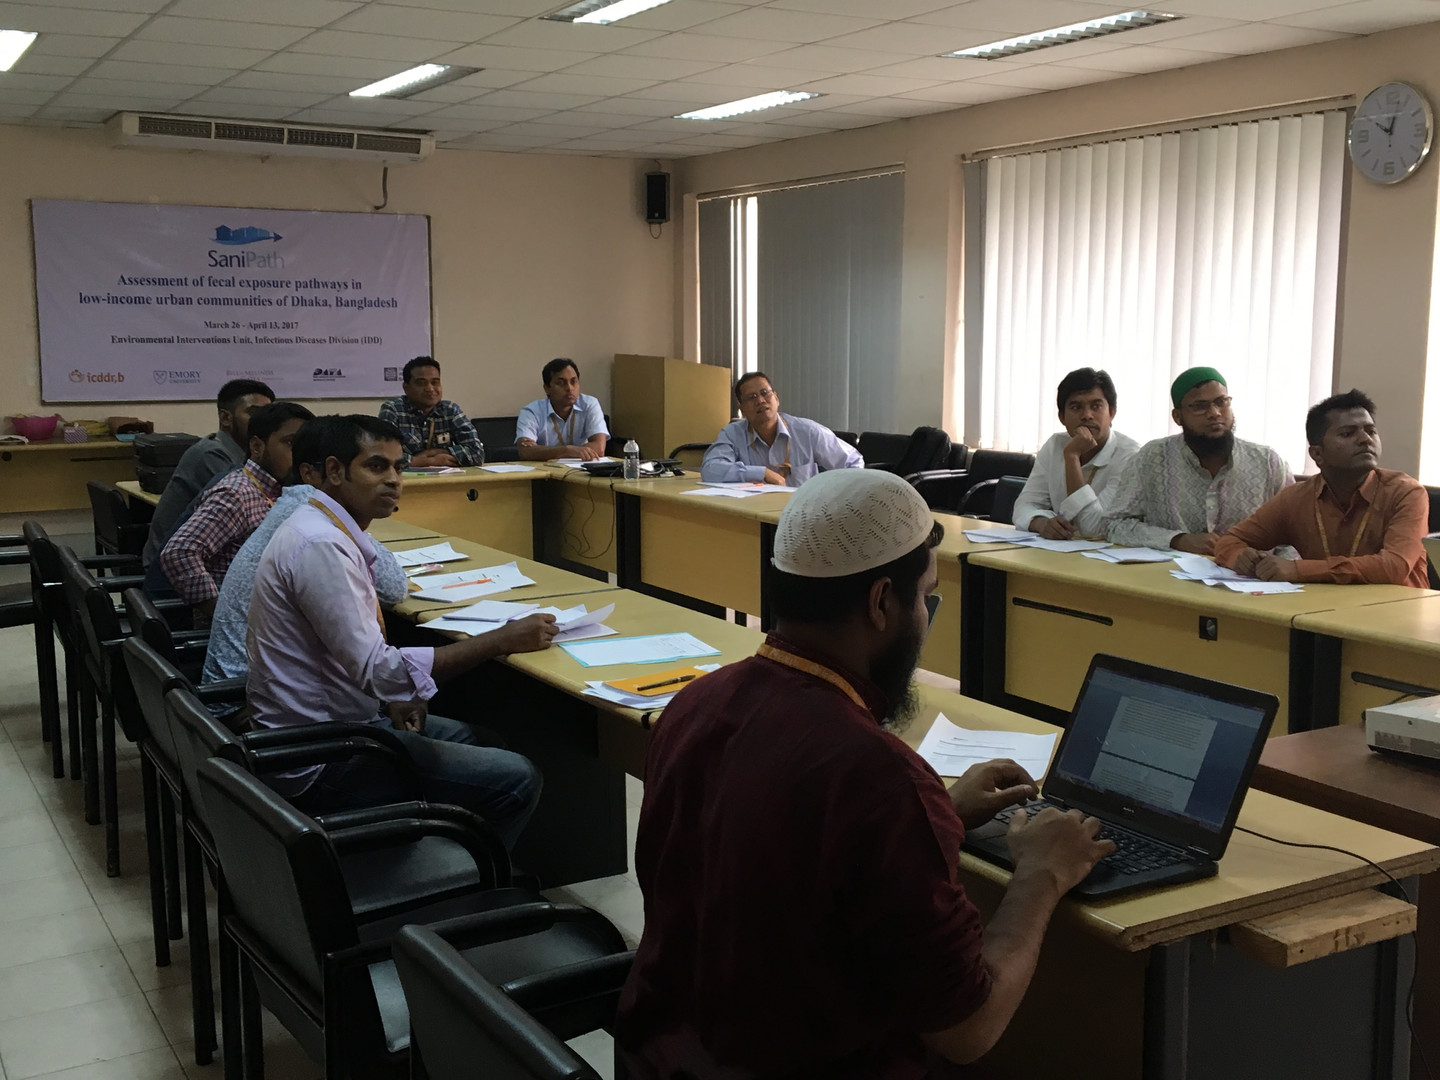 SaniPath training is underway in an office in Dhaka.